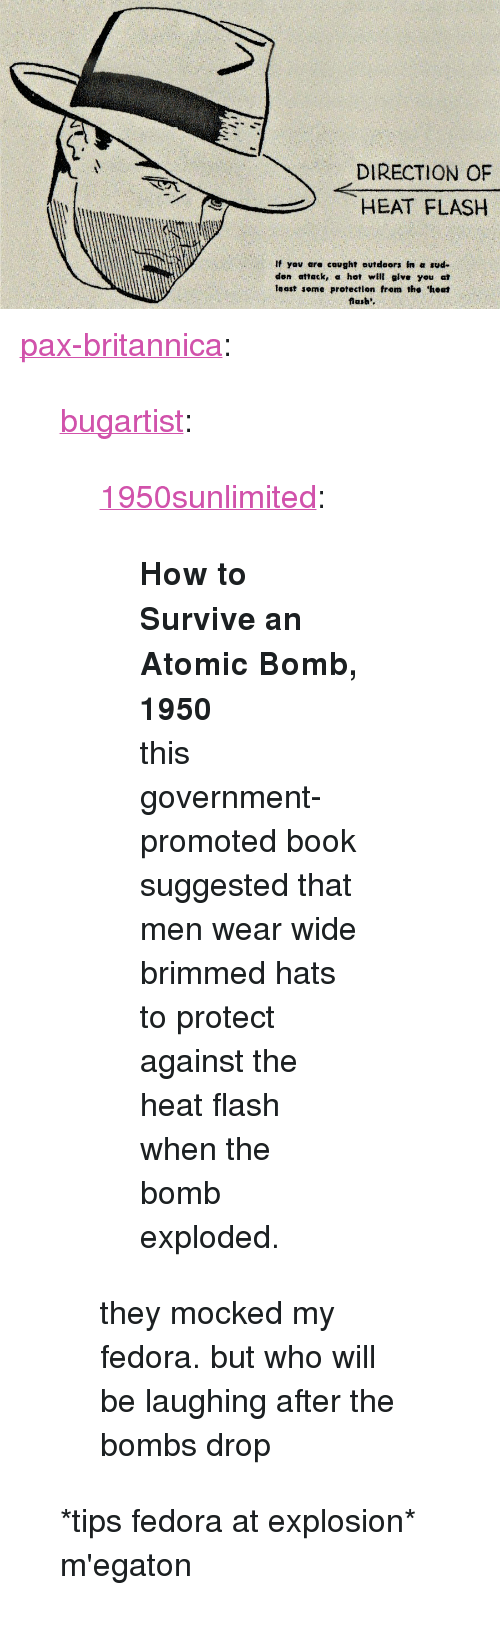 """Fedora, Tumblr, and Blog: DIRECTION OF  HEAT FLASH  El  If yov are cought outdoors In a sud-  den attack, a hot will give you at  least seme protection from the 'heat  flash'. <p><a href=""""https://pax-britannica.tumblr.com/post/155124776282/bugartist-1950sunlimited-how-to-survive-an"""" class=""""tumblr_blog"""">pax-britannica</a>:</p> <blockquote> <p><a href=""""https://bugartist.tumblr.com/post/154529324824/1950sunlimited-how-to-survive-an-atomic-bomb"""" class=""""tumblr_blog"""">bugartist</a>:</p> <blockquote> <p><a href=""""http://1950sunlimited.tumblr.com/post/82521812534/how-to-survive-an-atomic-bomb-1950-this"""" class=""""tumblr_blog"""">1950sunlimited</a>:</p> <blockquote> <p><strong>How to Survive an Atomic Bomb, 1950</strong></p> <p>this government-promoted book suggested that men wear wide brimmed hats to protect against the heat flash when the bomb exploded.</p> </blockquote> <p>they mocked my fedora. but who will be laughing after the bombs drop</p> </blockquote> <p>*tips fedora at explosion* m'egaton</p> </blockquote>"""